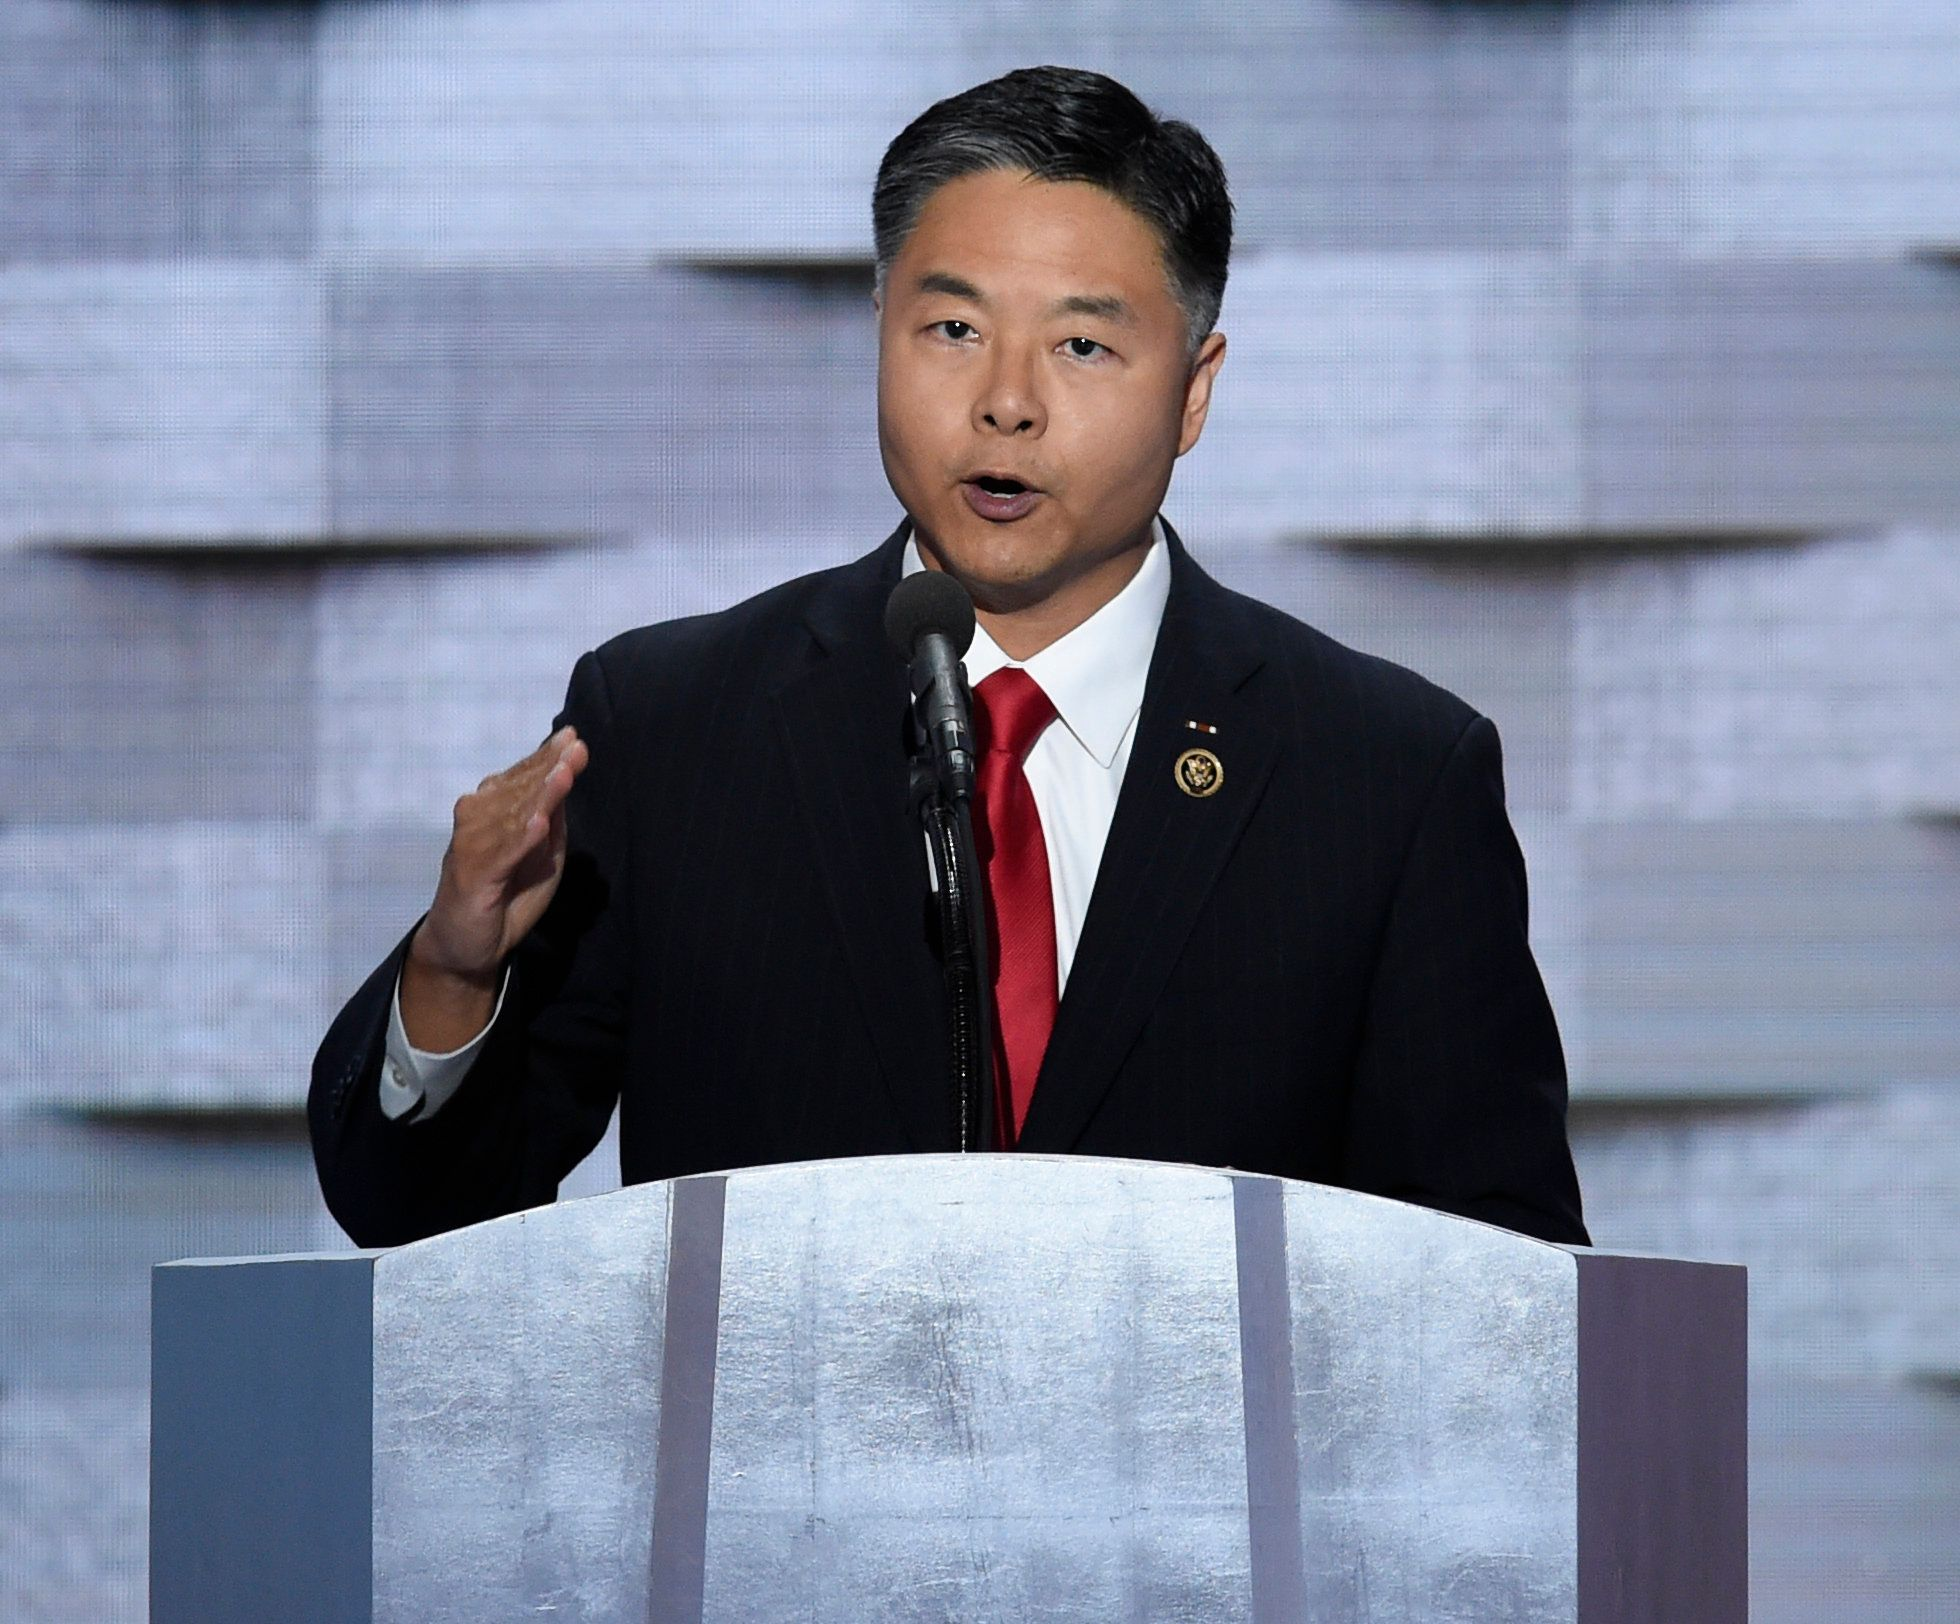 US Representative Ted Lieu of California addresses delegates on the fourth and final day of the Democratic National Convention at Wells Fargo Center on July 28, 2016 in Philadelphia, Pennsylvania.   / AFP / SAUL LOEB        (Photo credit should read SAUL LOEB/AFP/Getty Images)